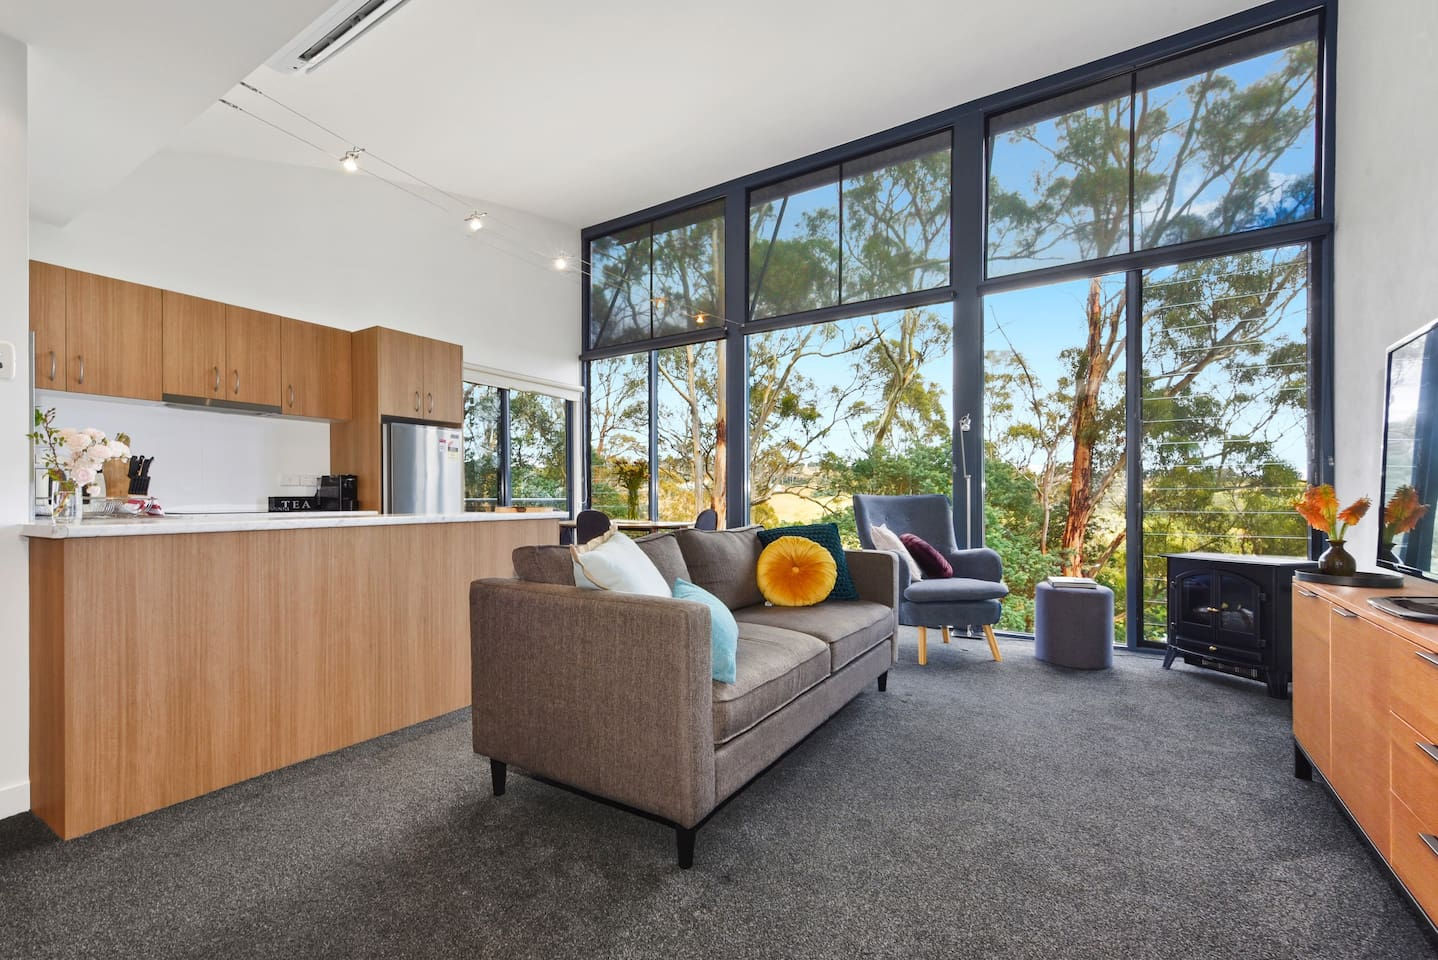 Relax and draw breath at The Ridge@Tamar Ridge - a modern fully equipped one bedroom apartment. Designed for privacy it is ideal for couples, singles and the discerning business person seeking a different experience.